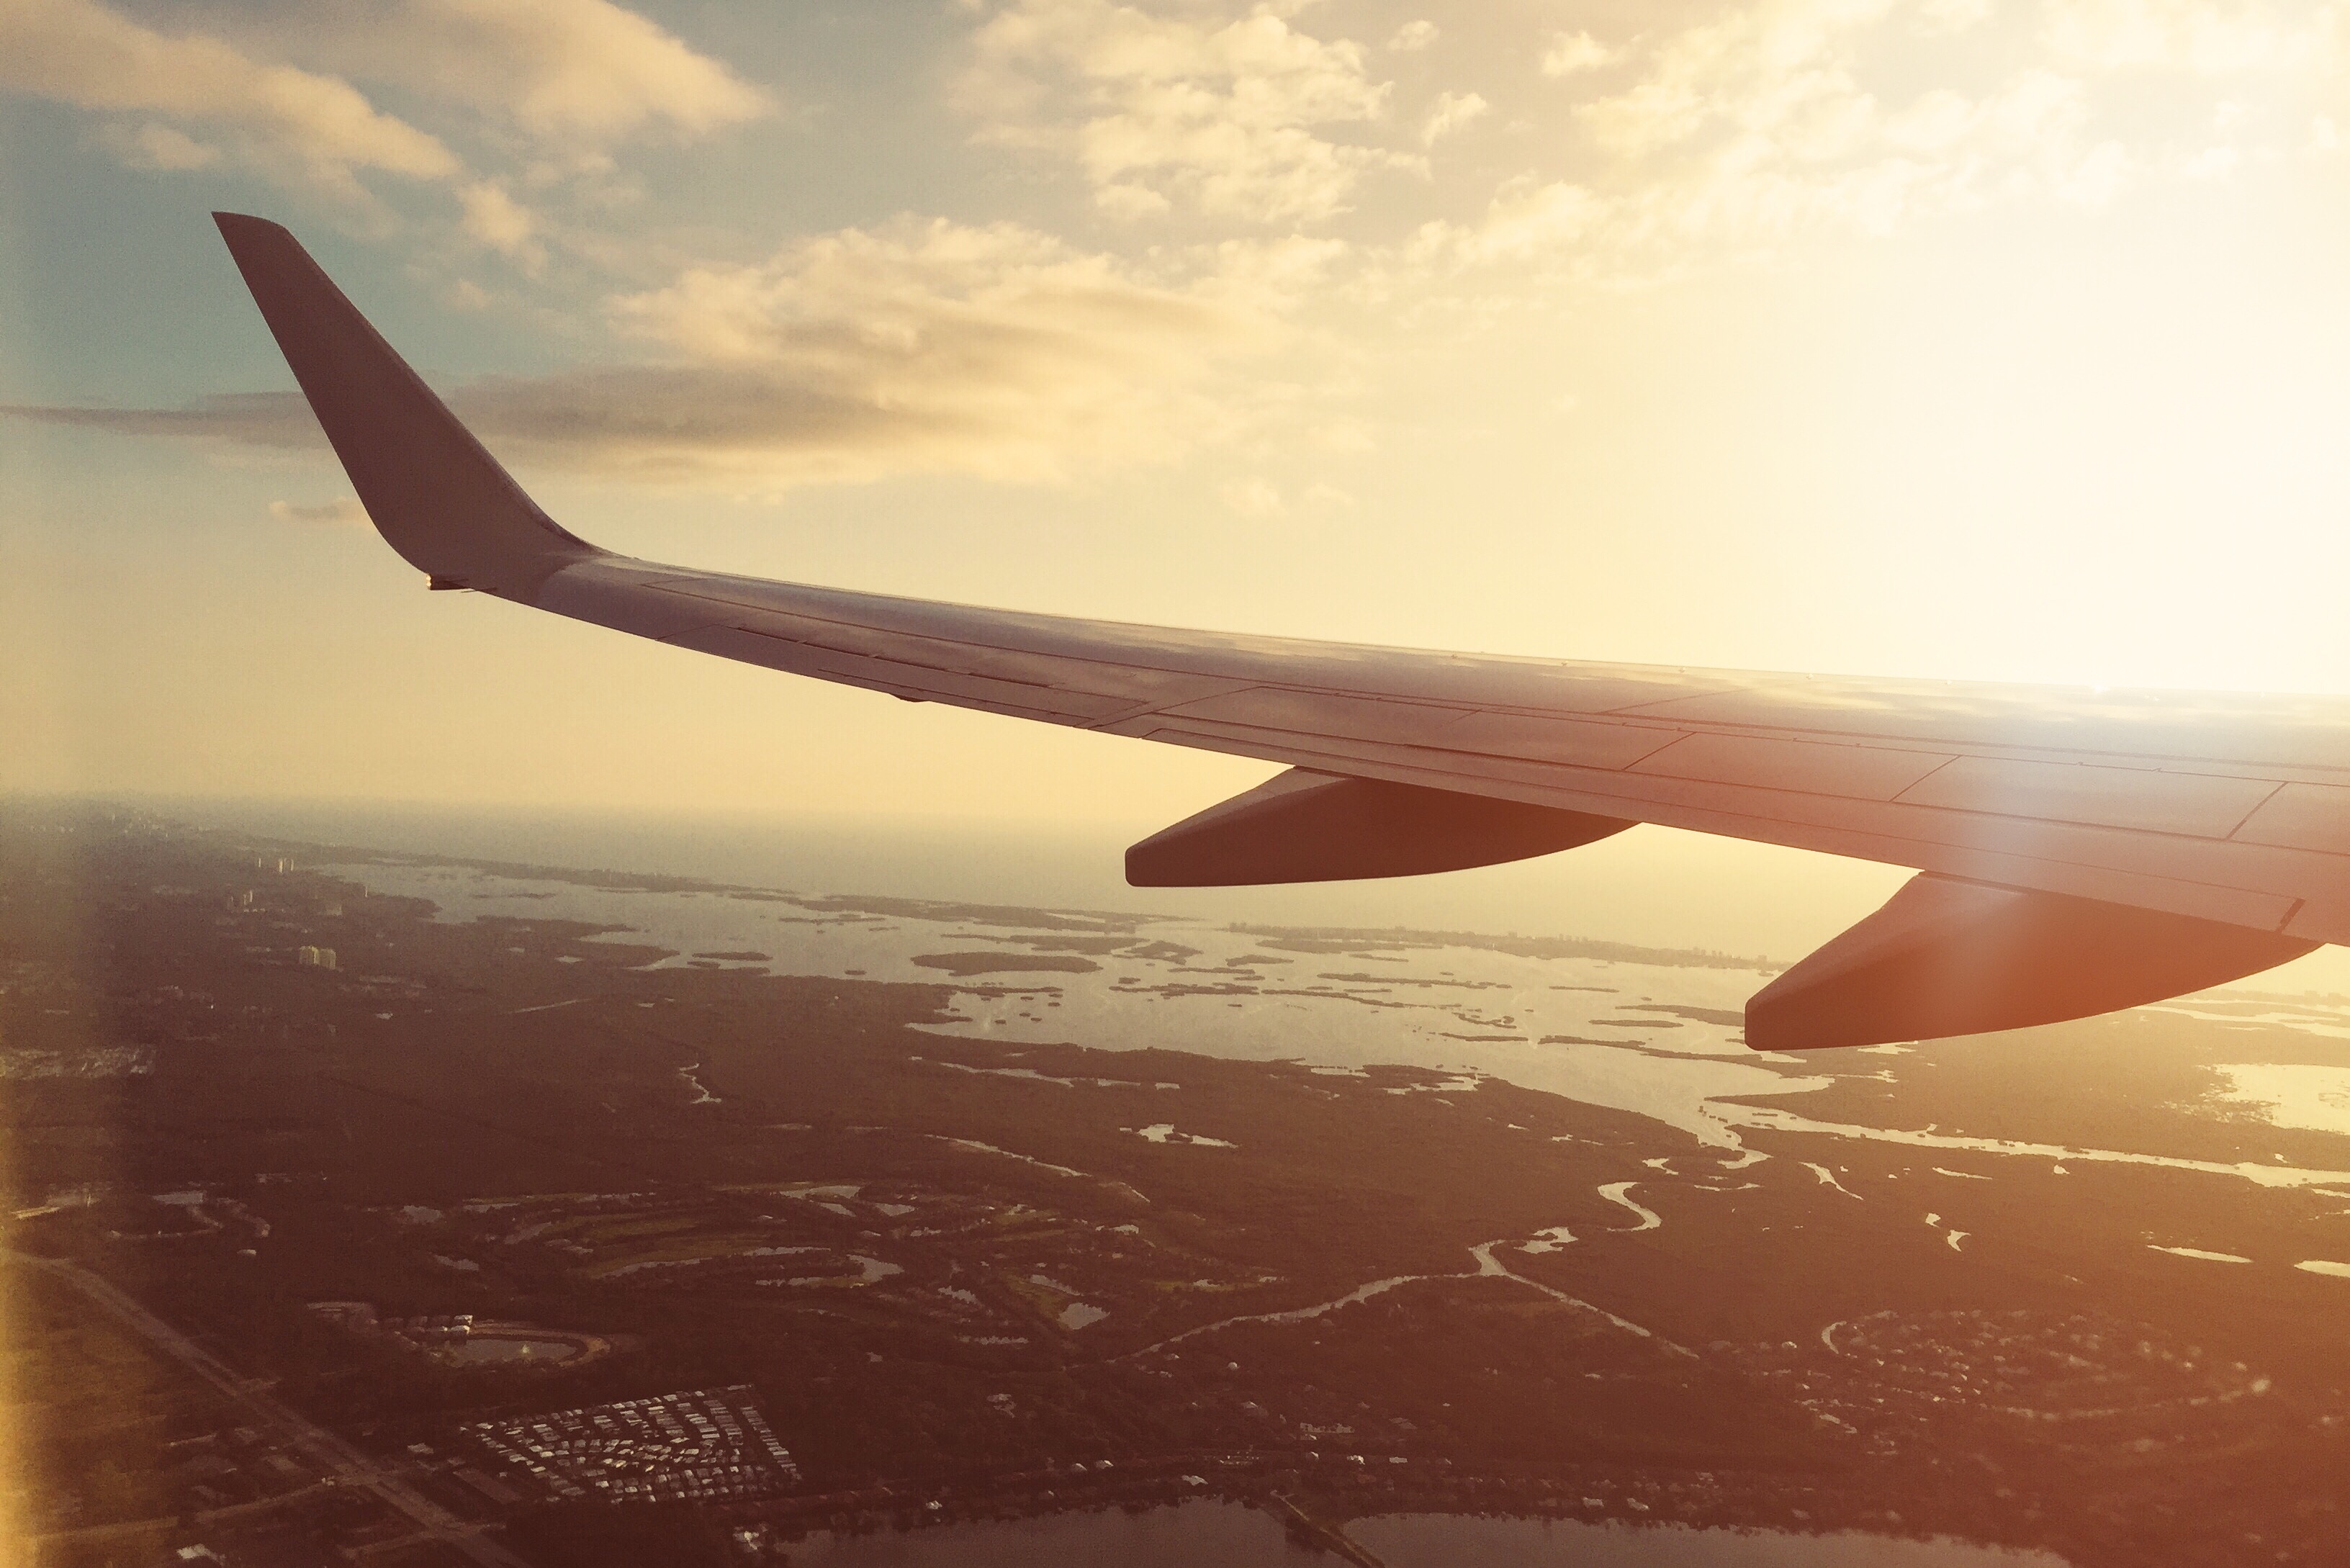 Duty-Free Travel Just Won't Fly